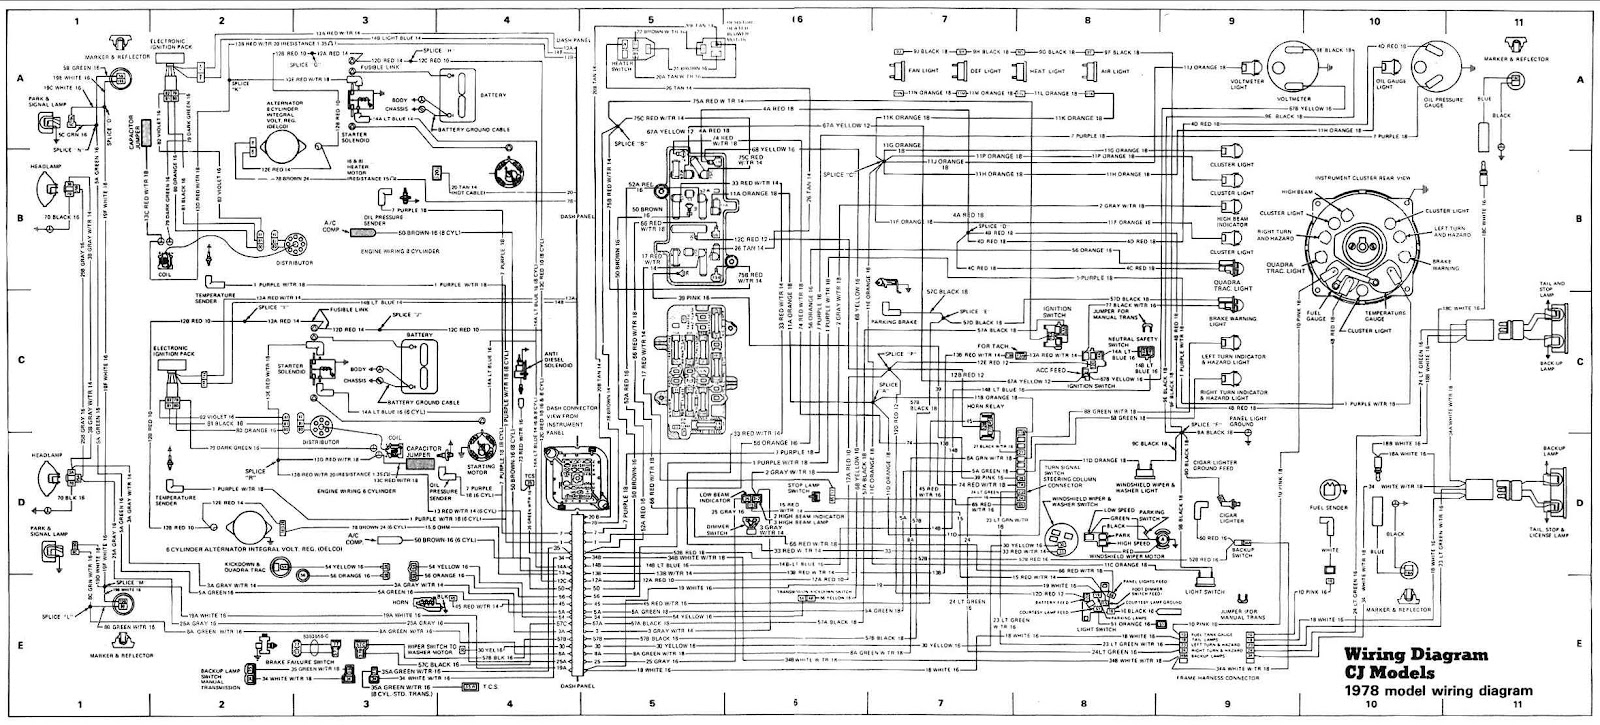 jeep grand cherokee wj stereo system wiring diagrams throughout 1998 jeep grand cherokee parts diagram?quality\=80\&strip\=all 2004 jeep liberty fuse box diagram house plan maker 2002 jeep grand cherokee wiring diagram at money-cpm.com